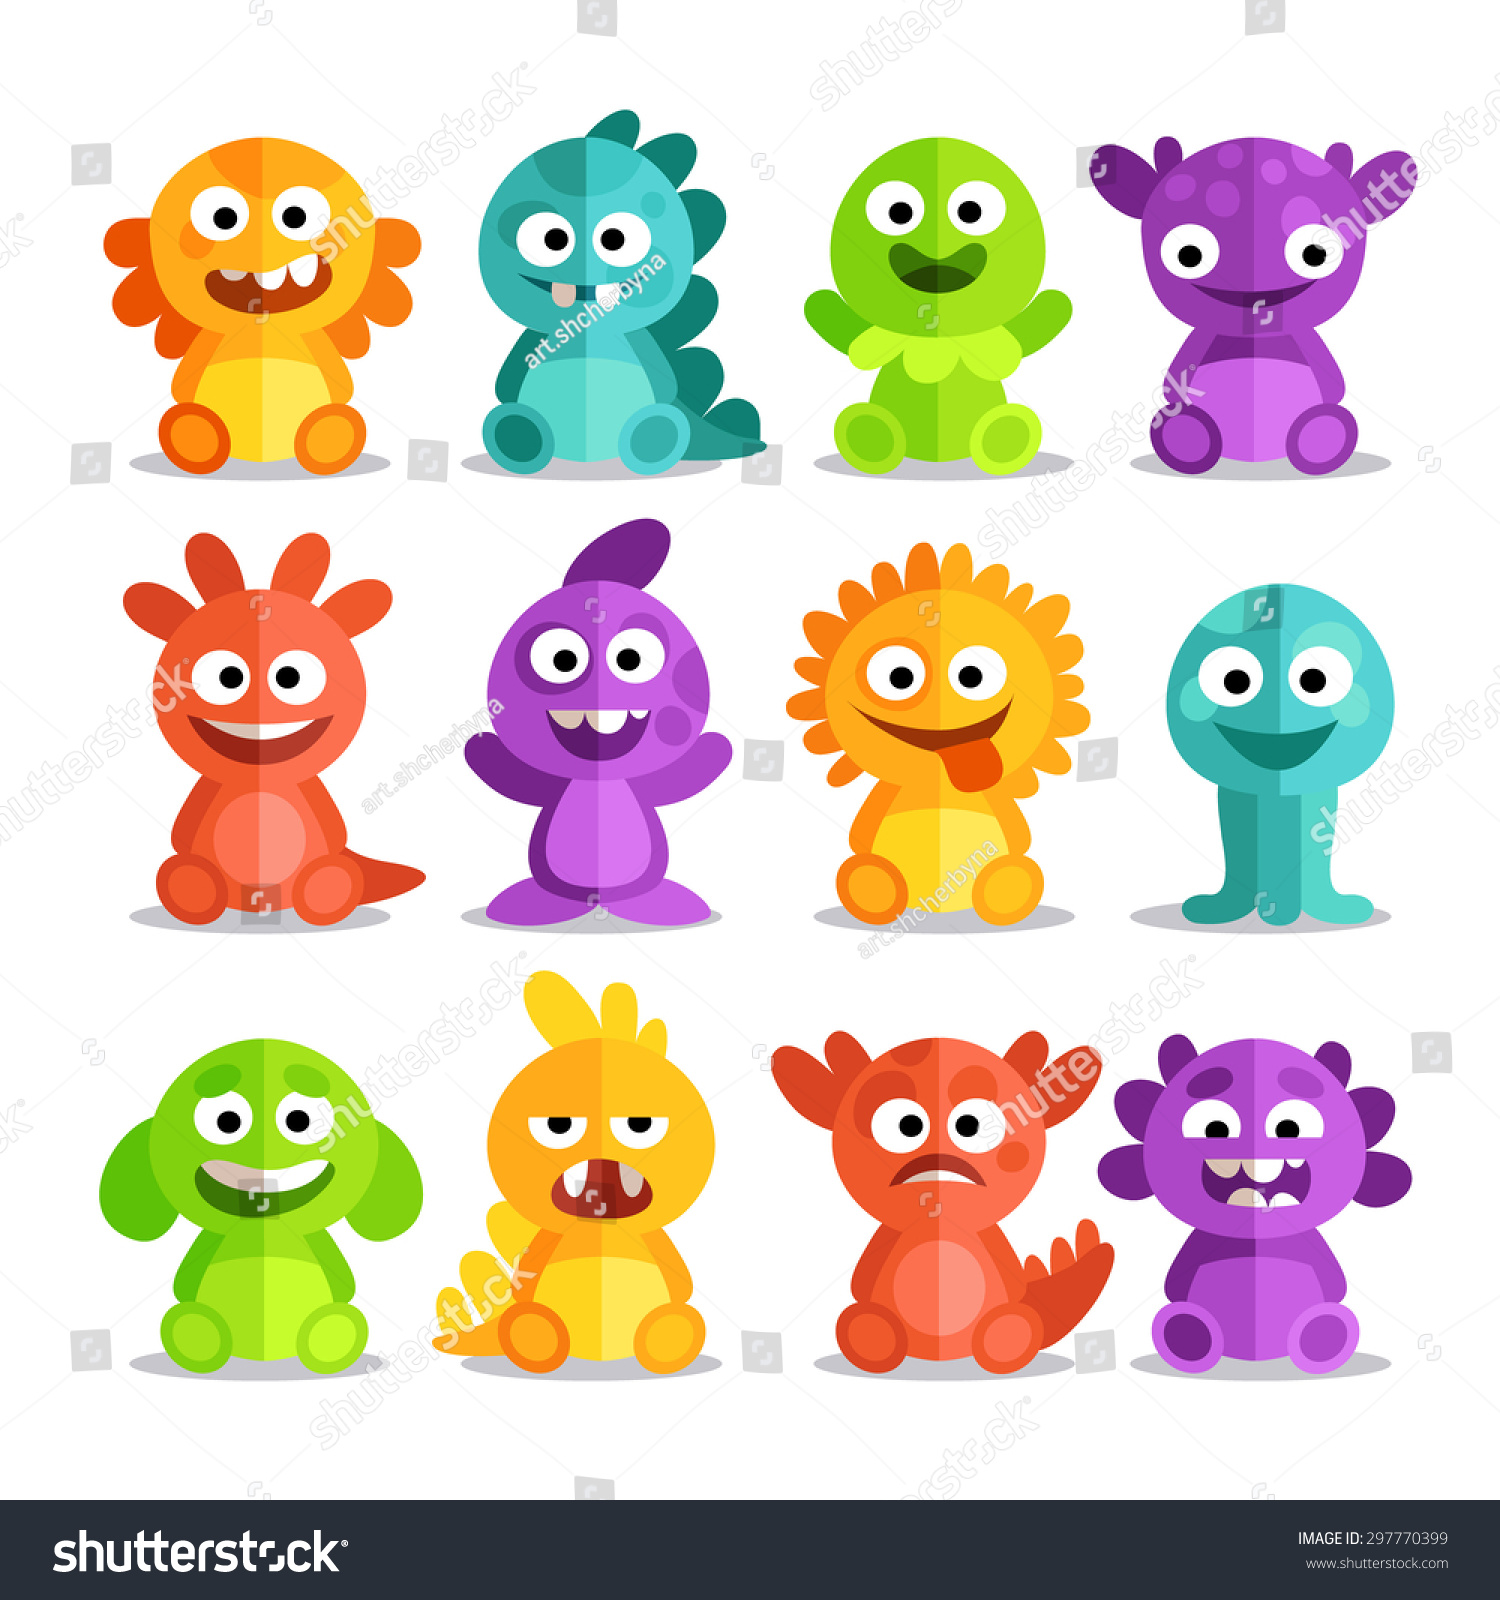 Set Cartoon Monsters Flat Style Colorful Stock Vector 297770399 ...